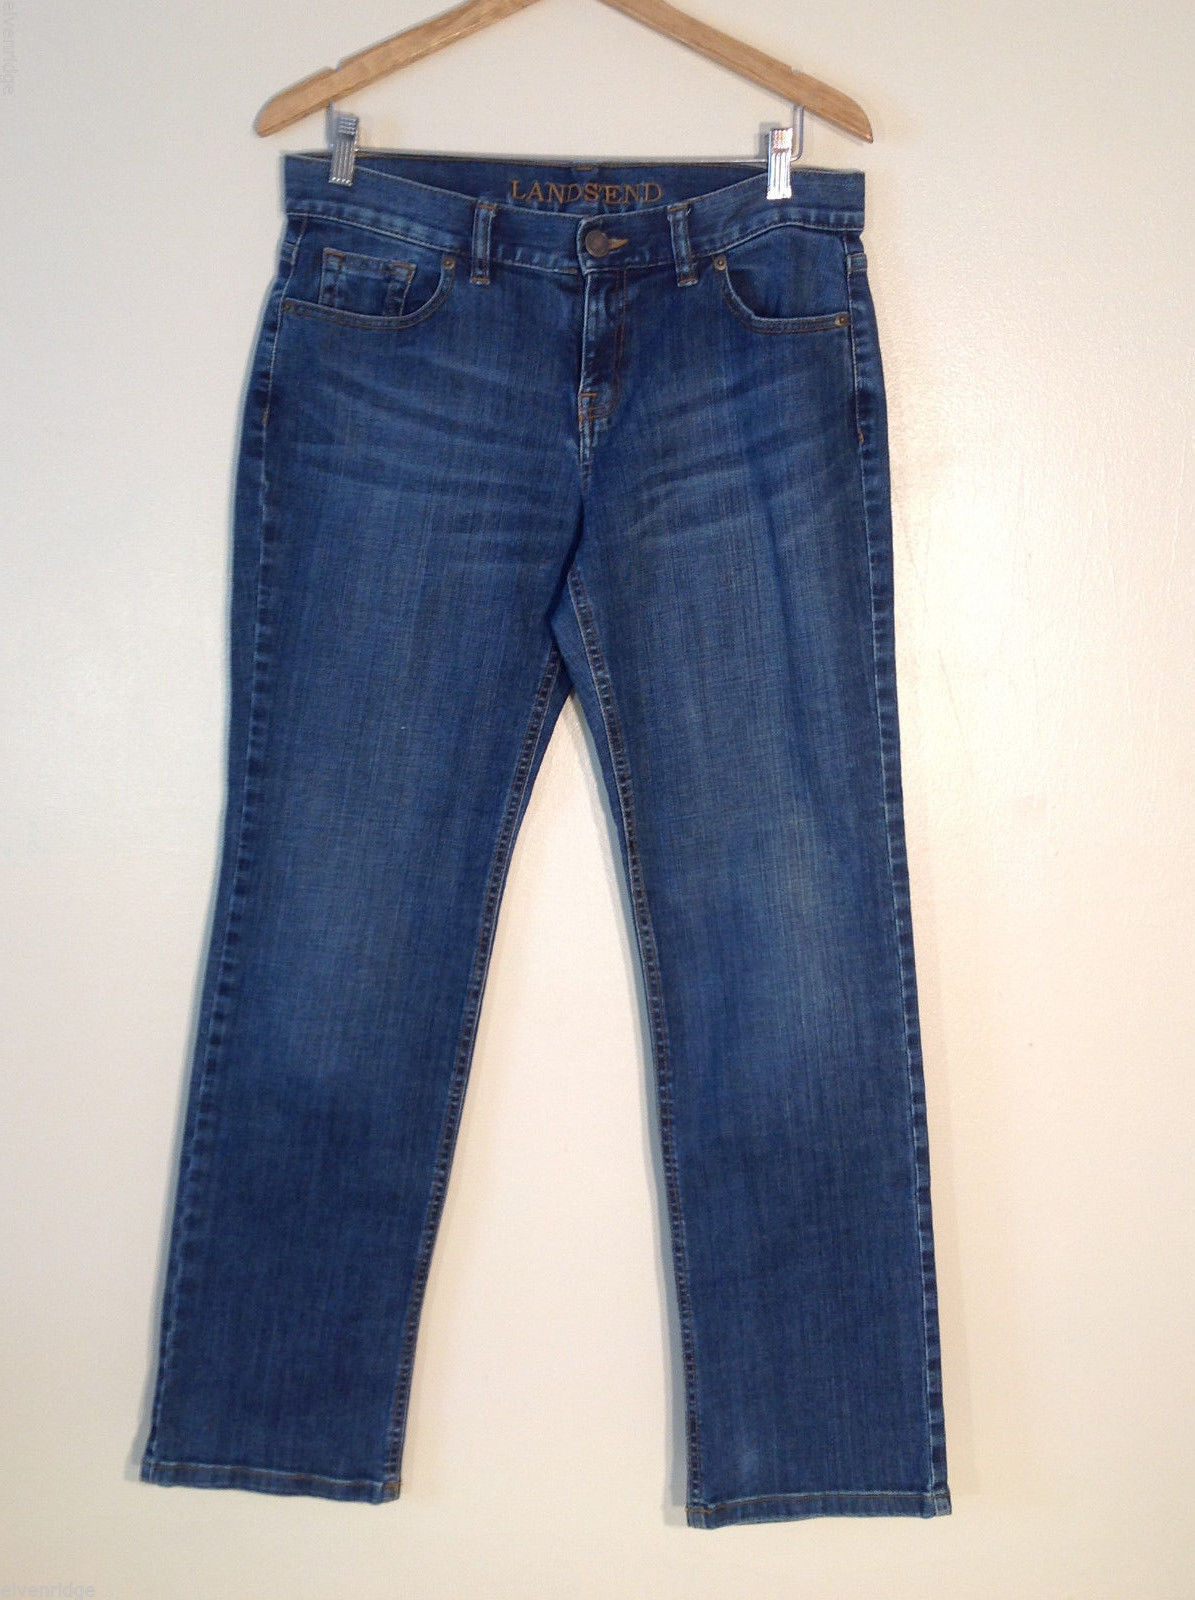 Lands' End Women's Tall Size 8 Denim Jeans Medium Blue Wash Straight Vintage